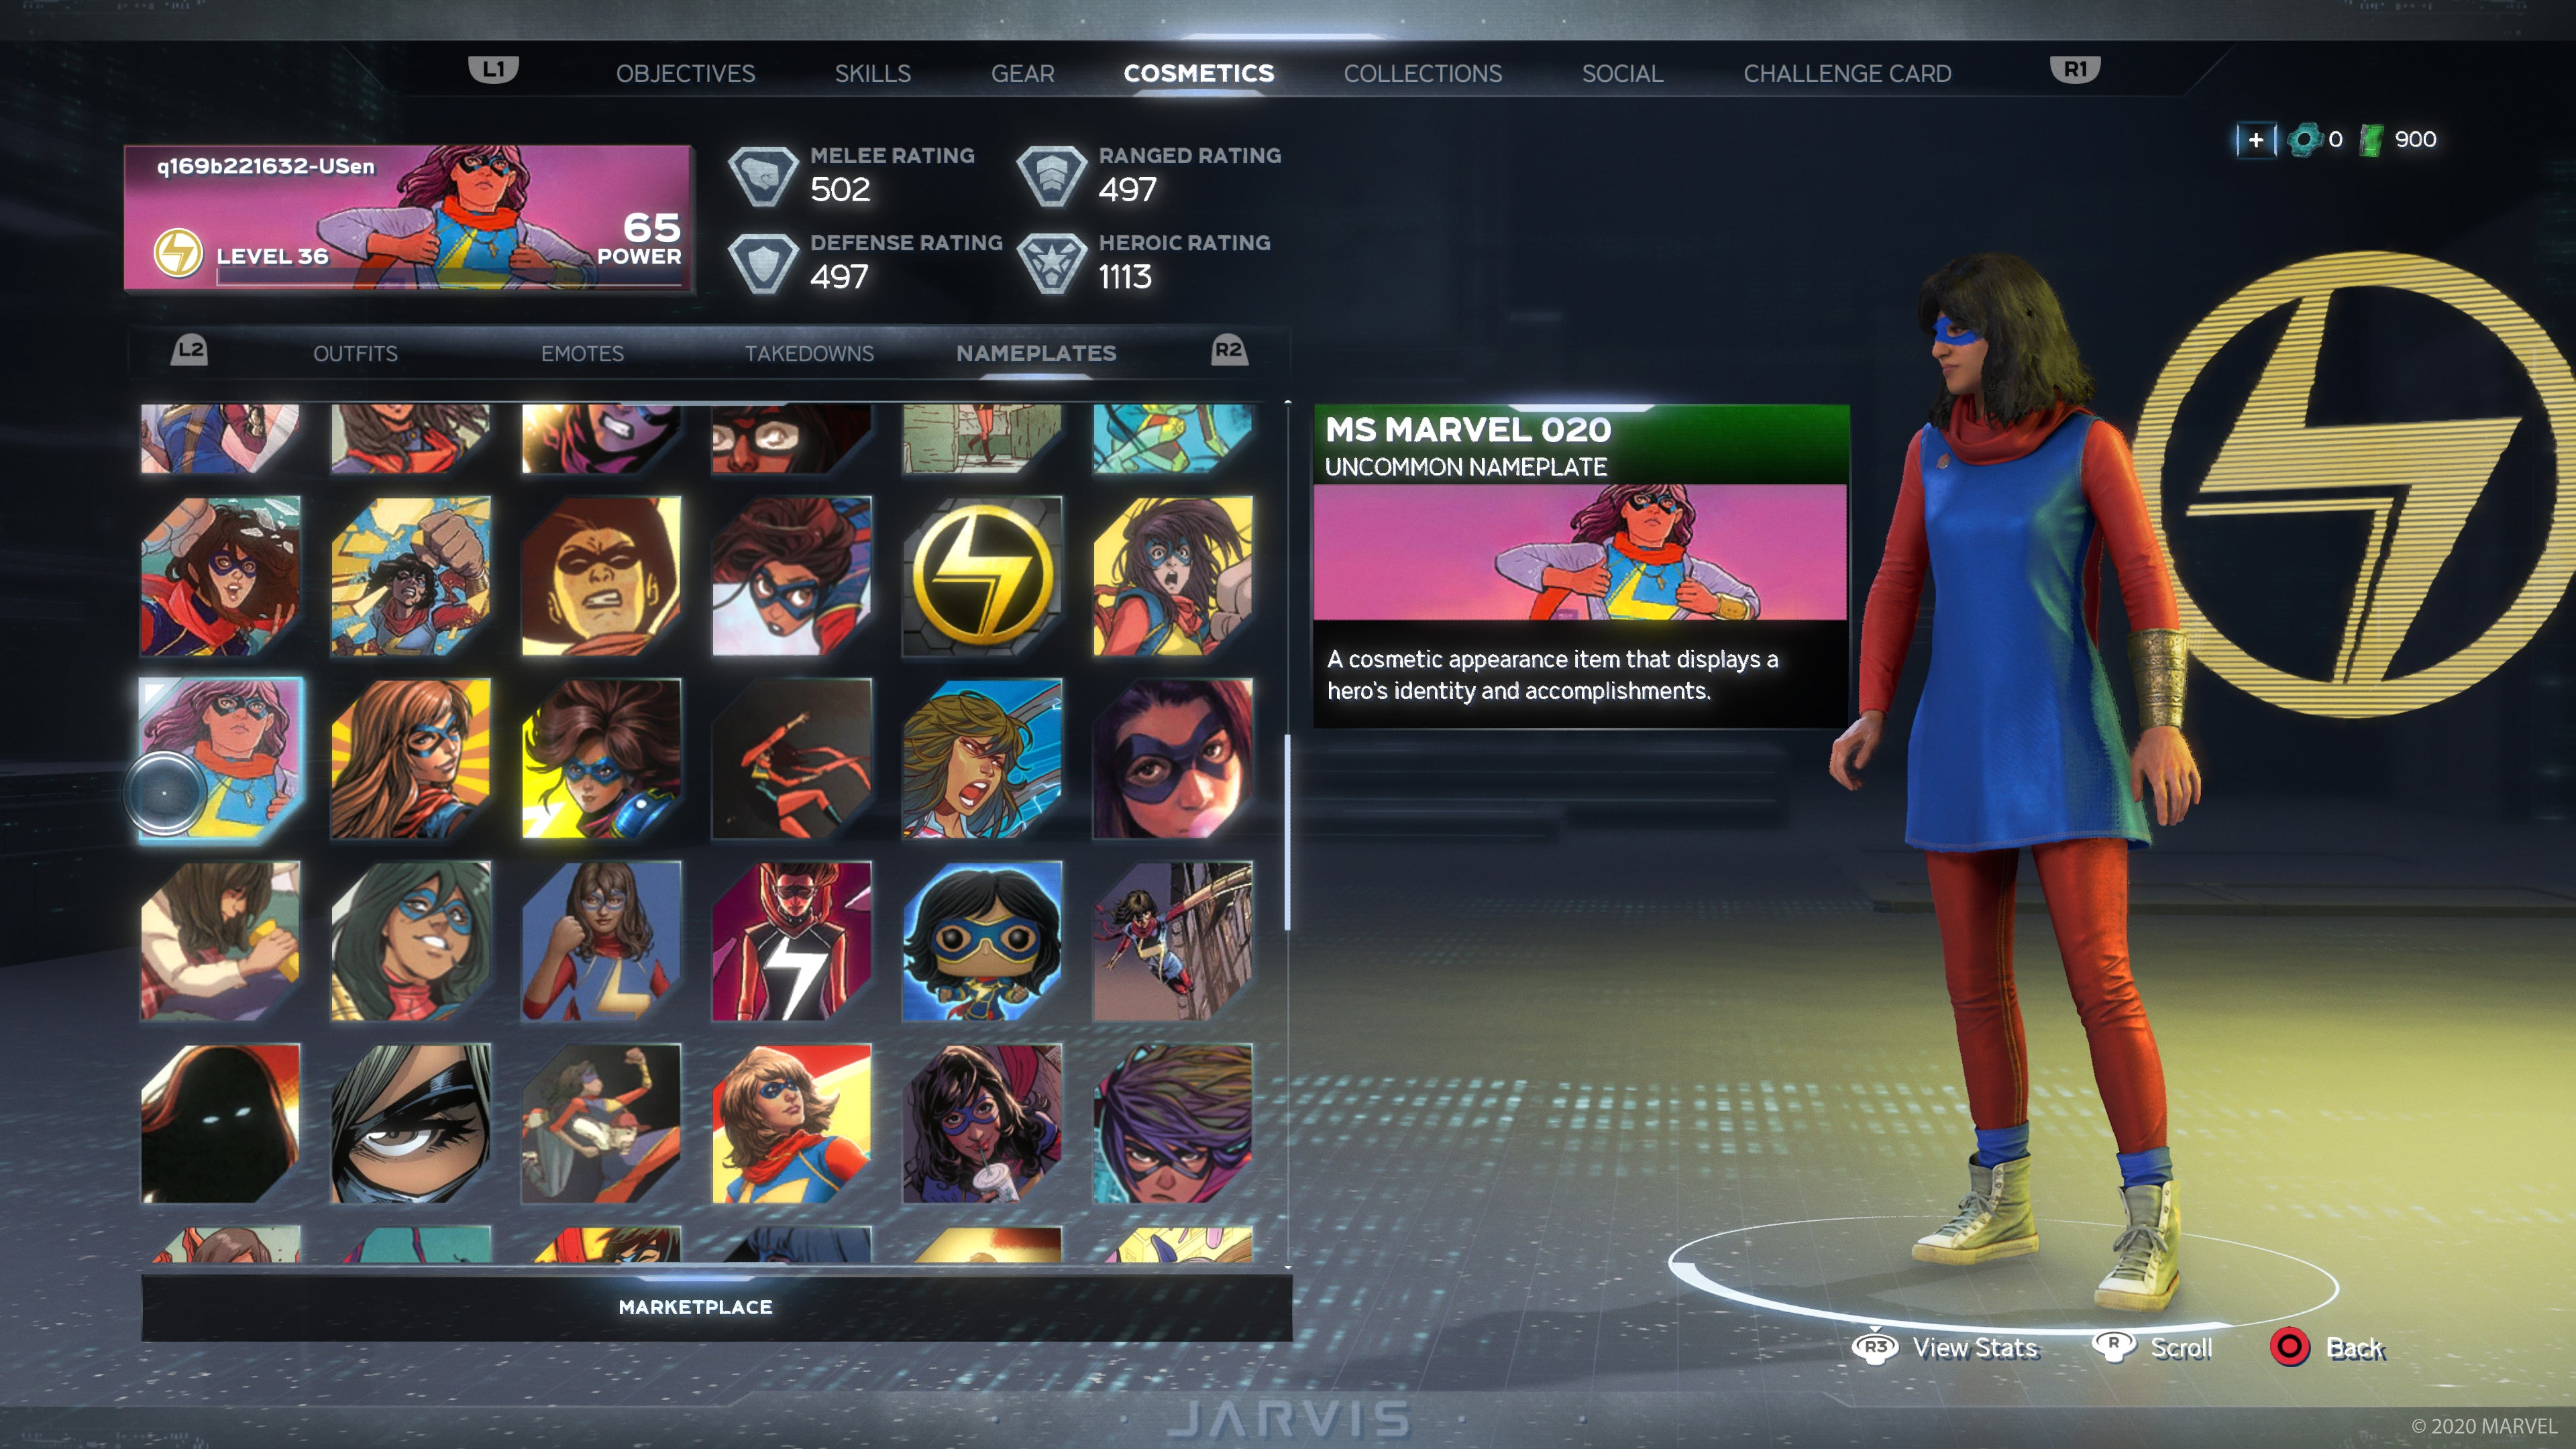 In-game screen showing a plethora of Ms Marvel nameplated. Ms Marvel 020 is promoted